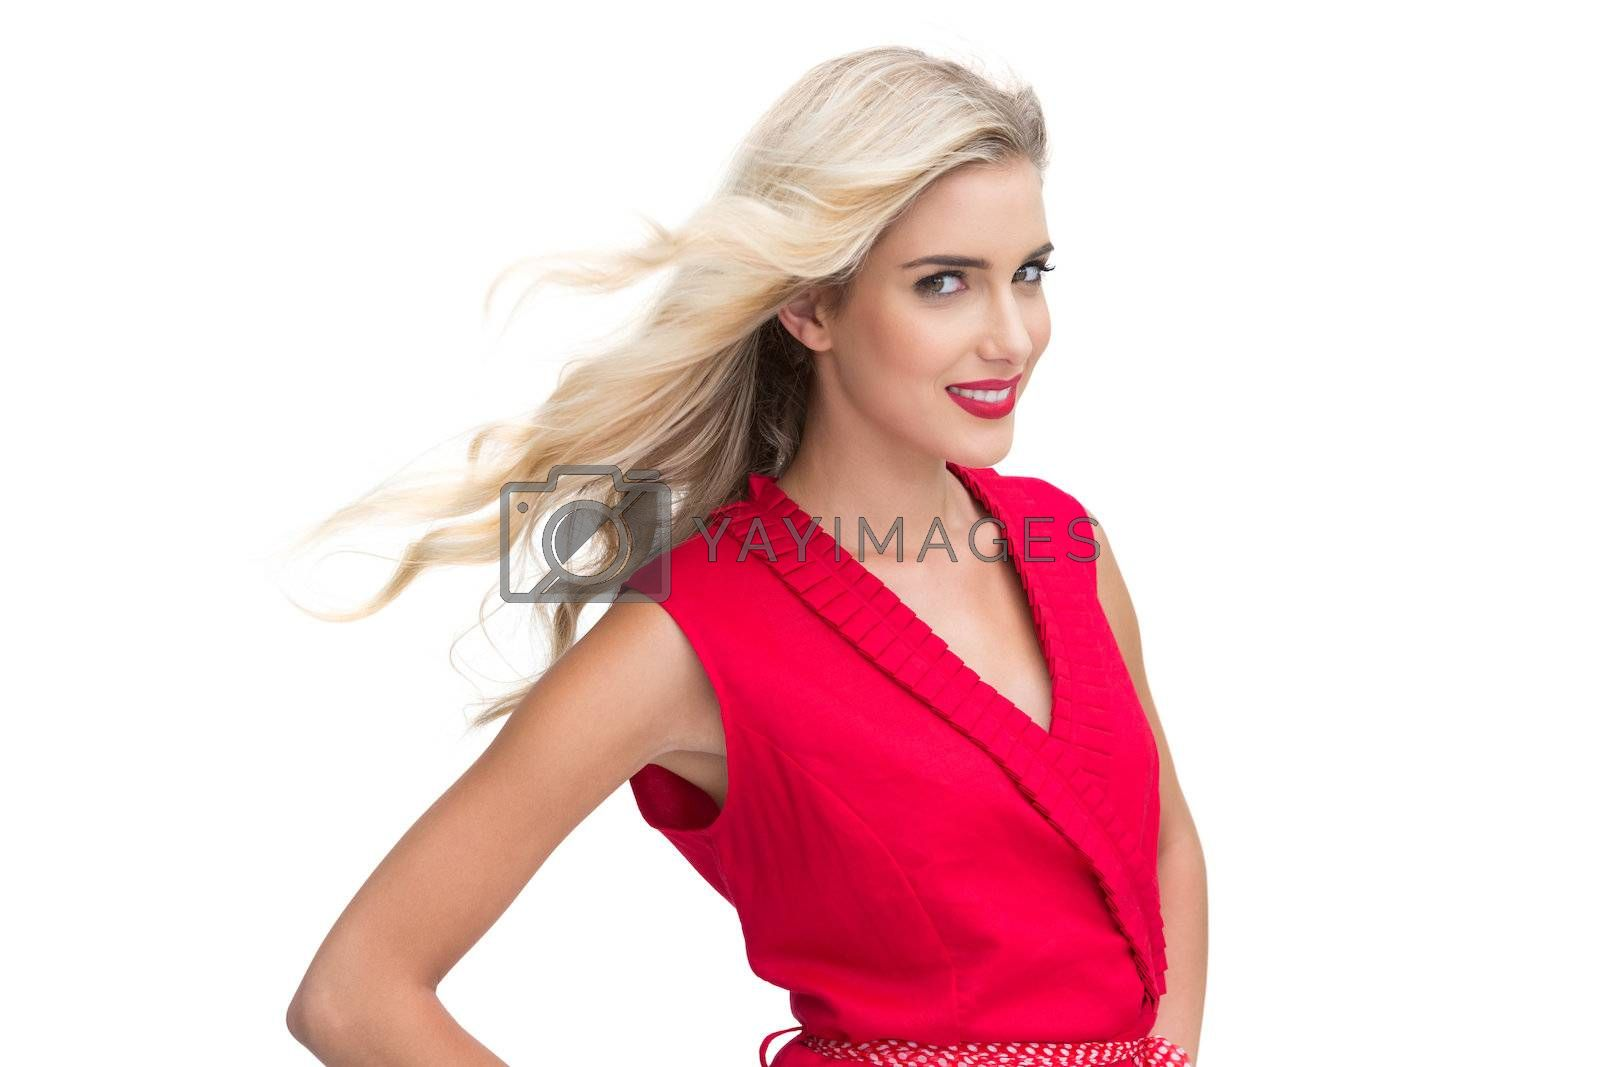 Woman wearing red dress smiling at camera by Wavebreakmedia